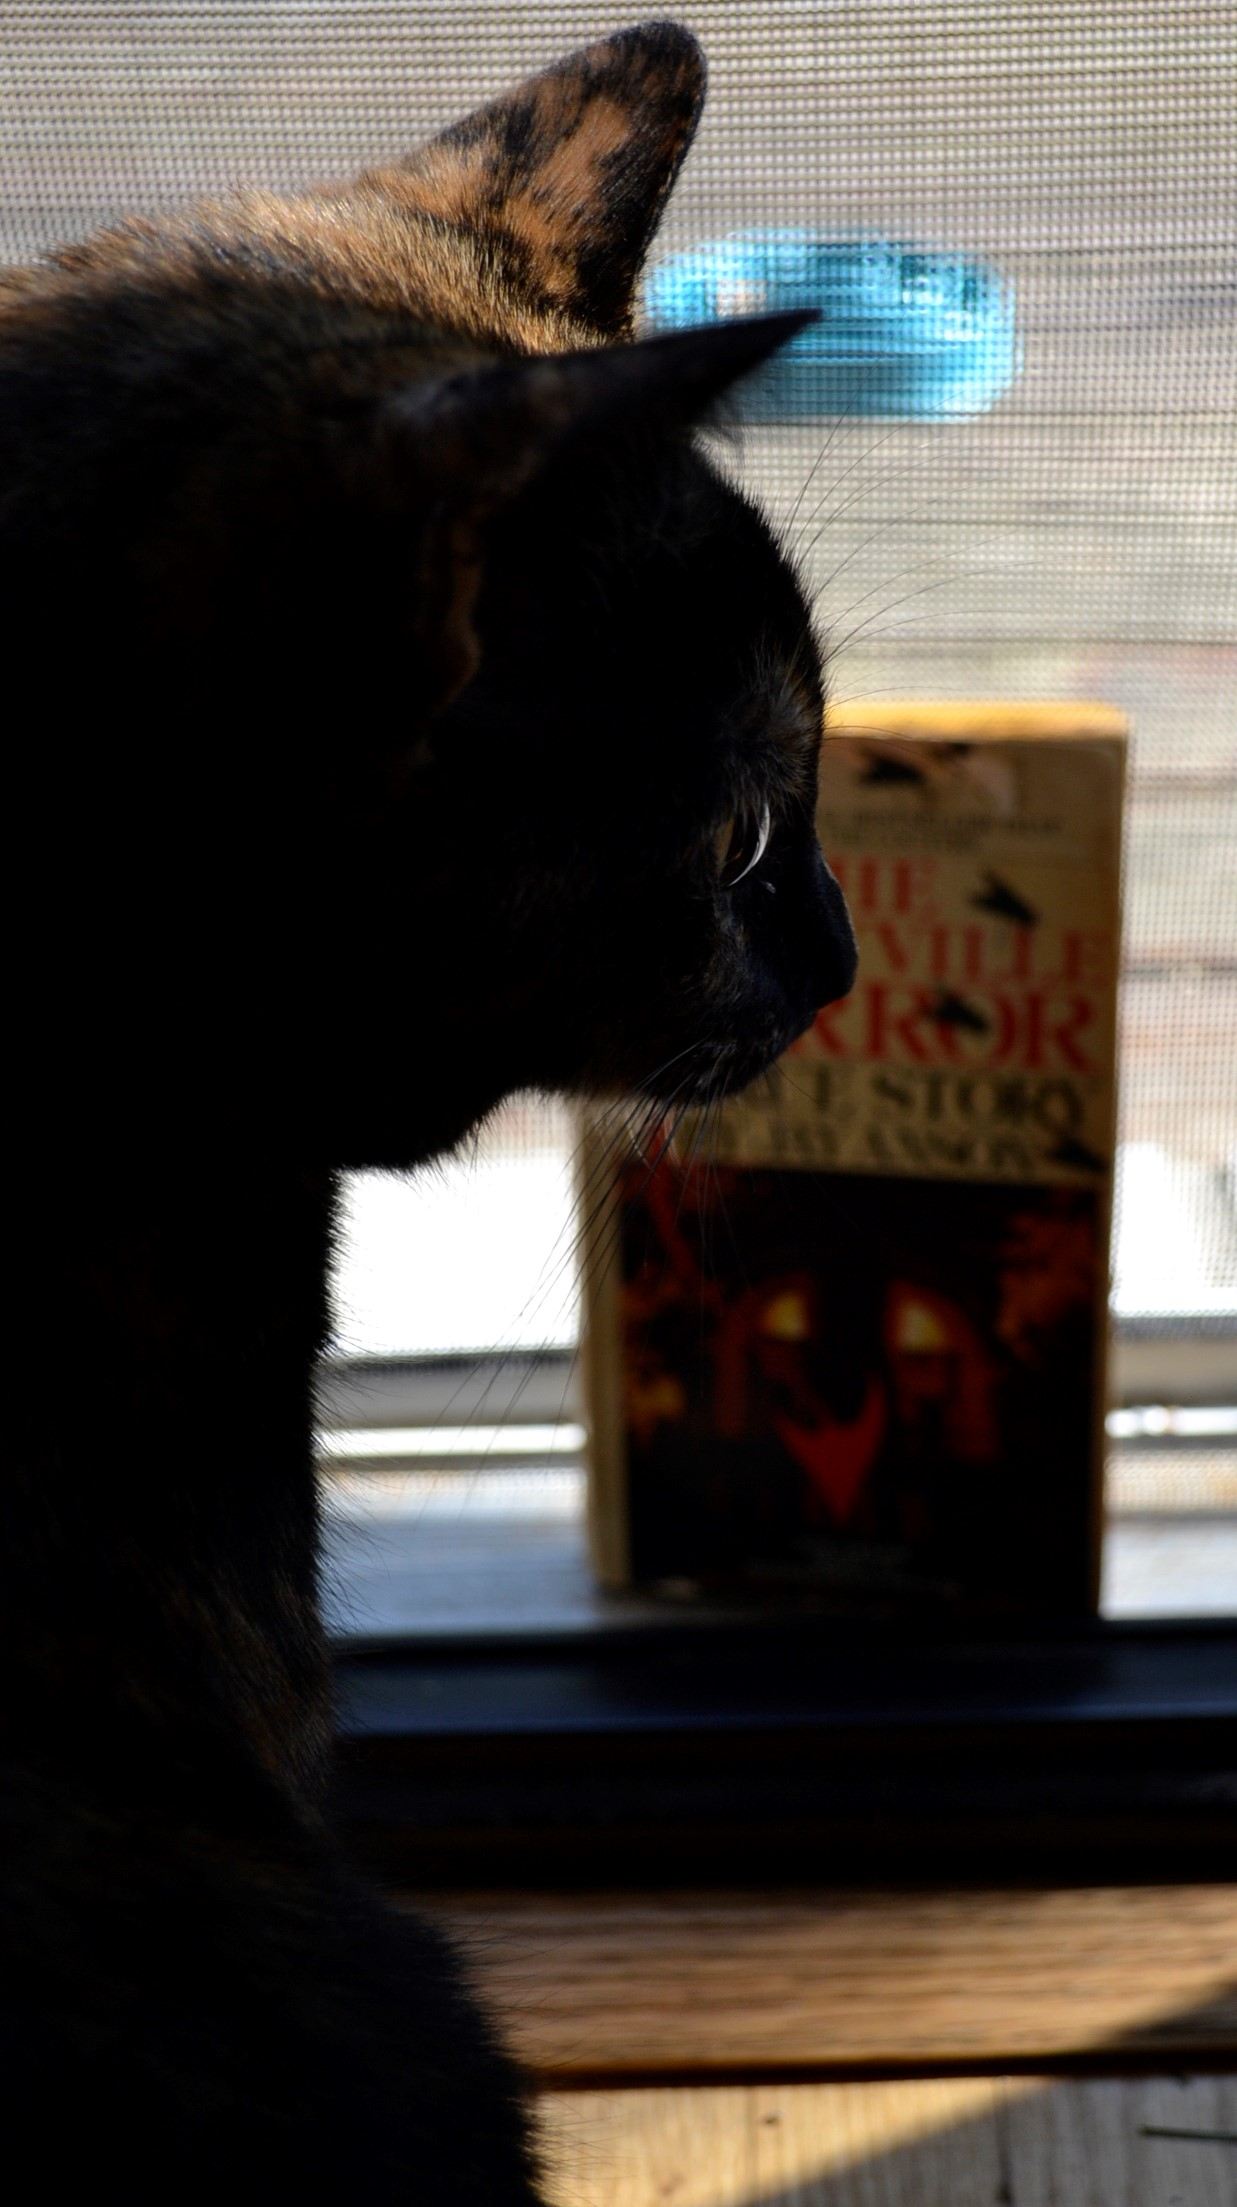 A tortoiseshell cat lurks in shadows in front of The Amityville Horror.